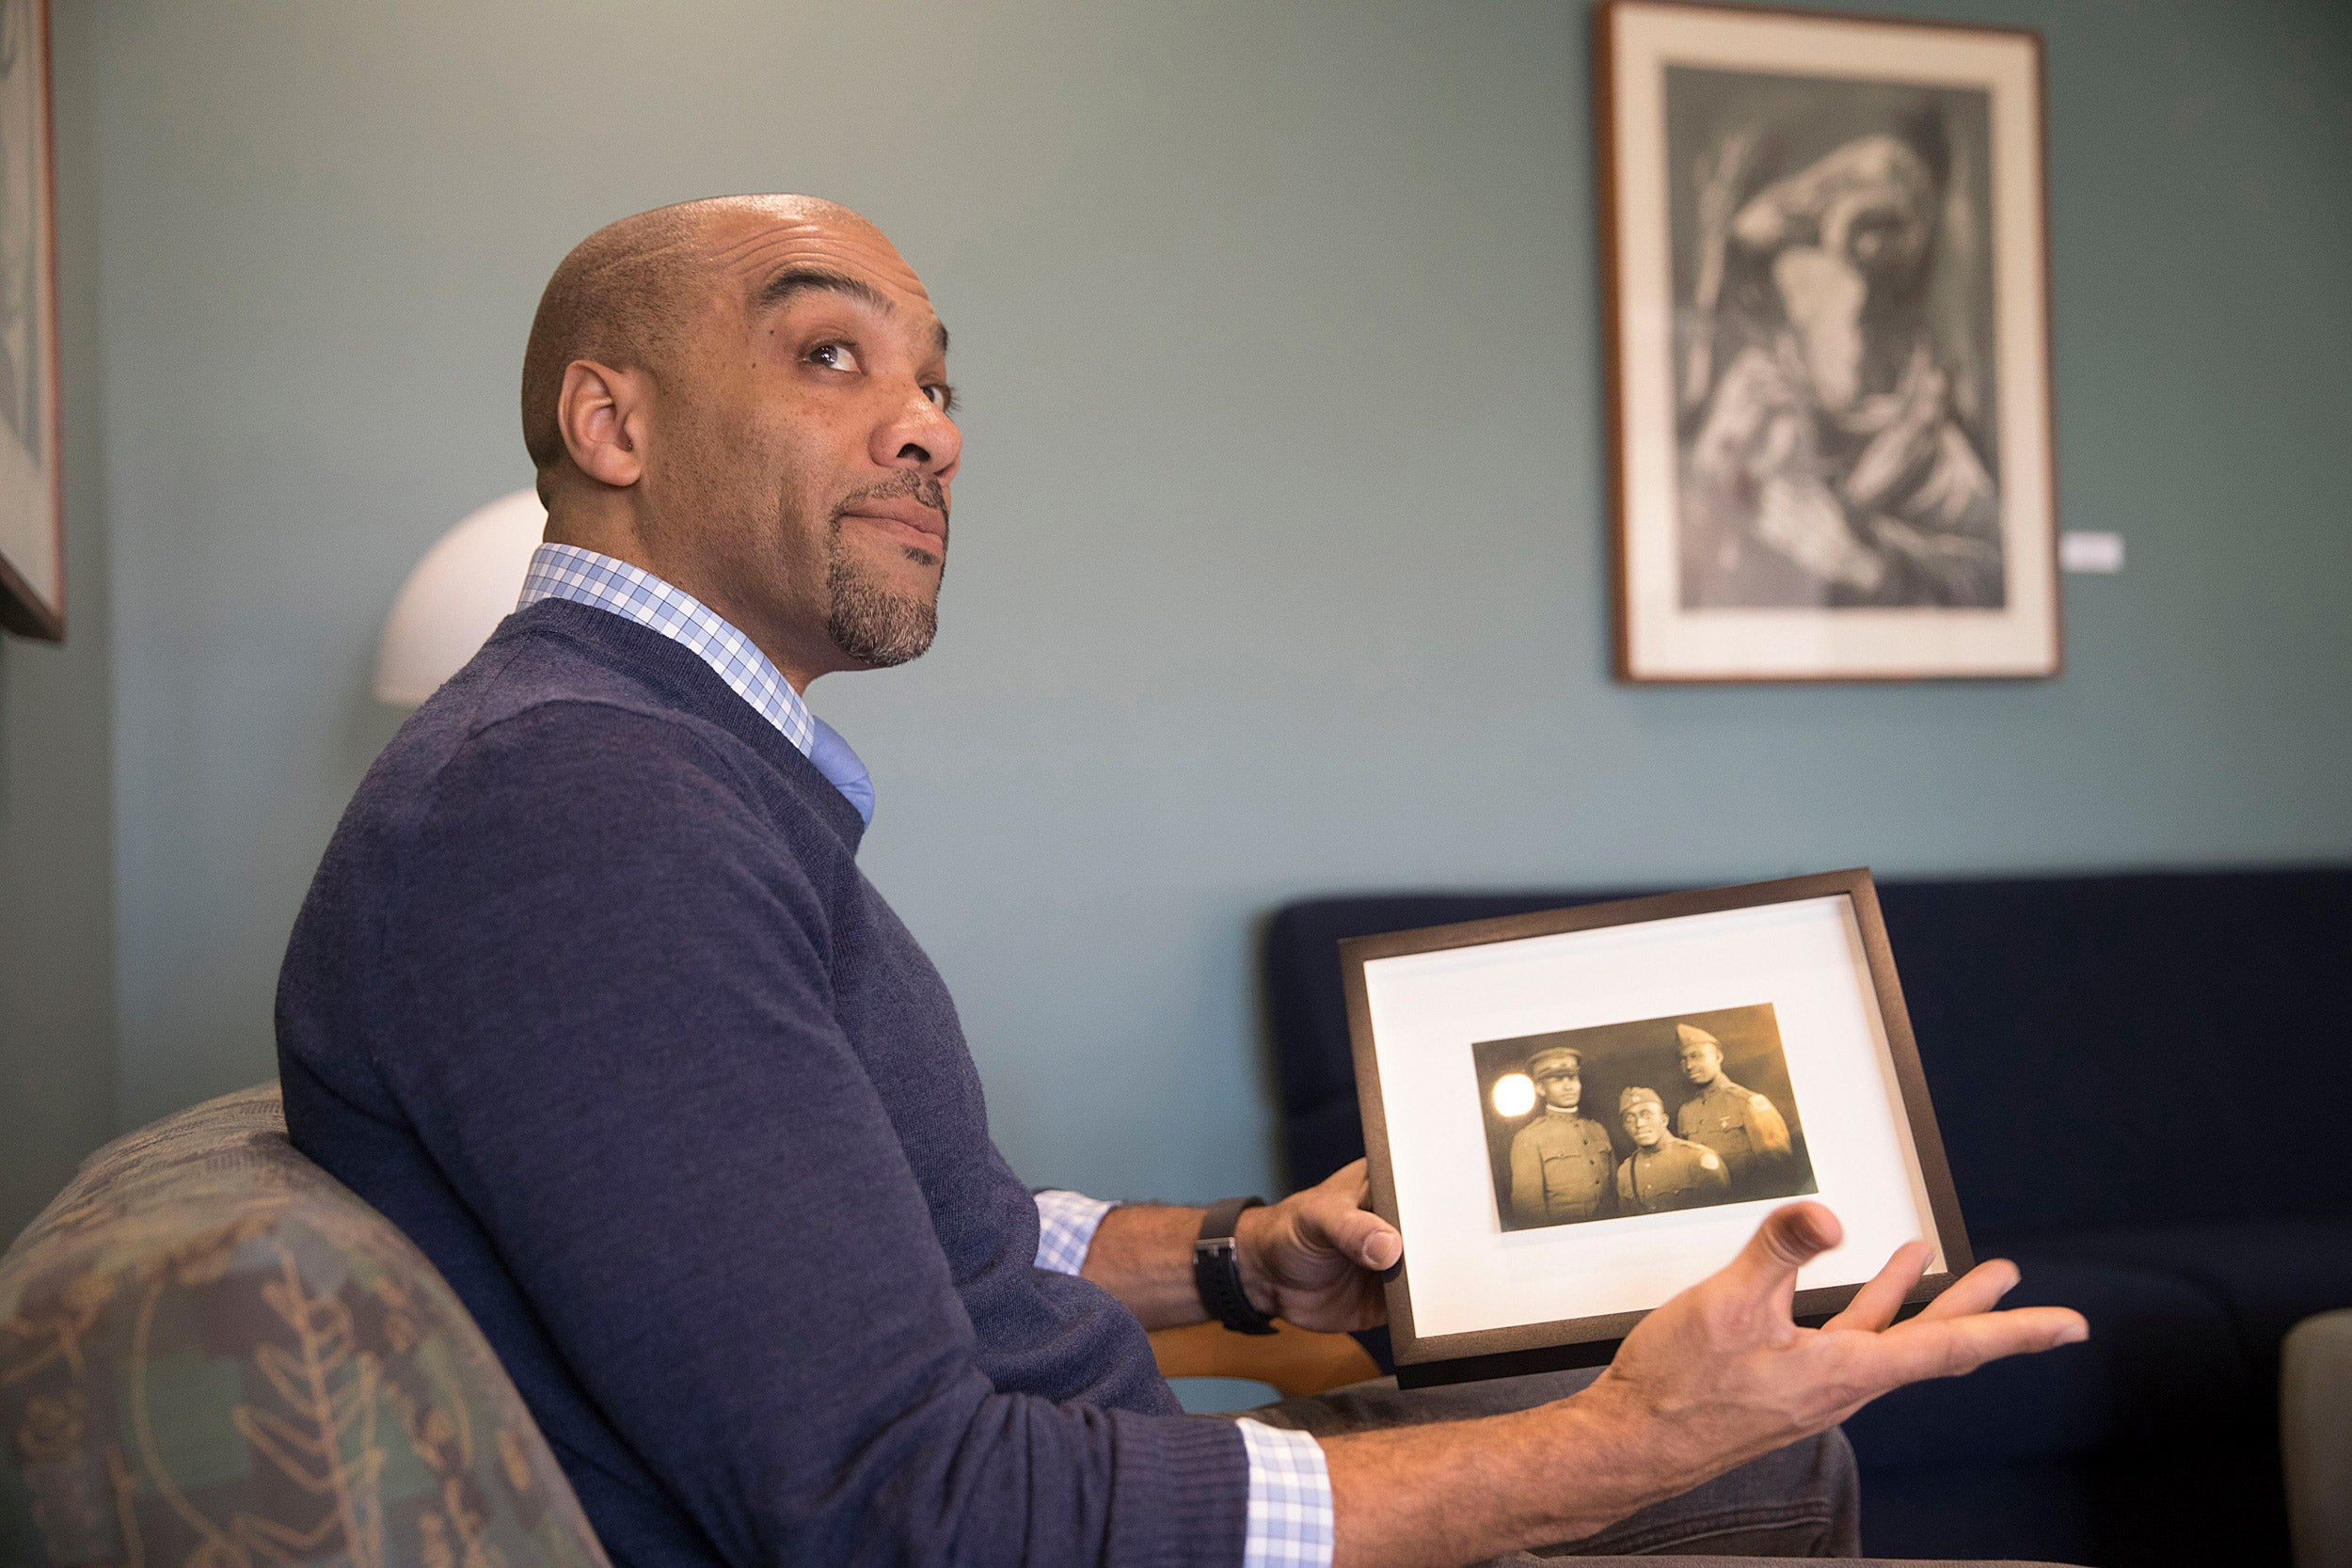 """Radcliffe fellow Chad Williams is working on a book about what he considers one of W.E.B. Du Bois' greatest missteps: """"The Black Man and the Wounded World,"""" an unfinished history of the African-American experience during World War I."""